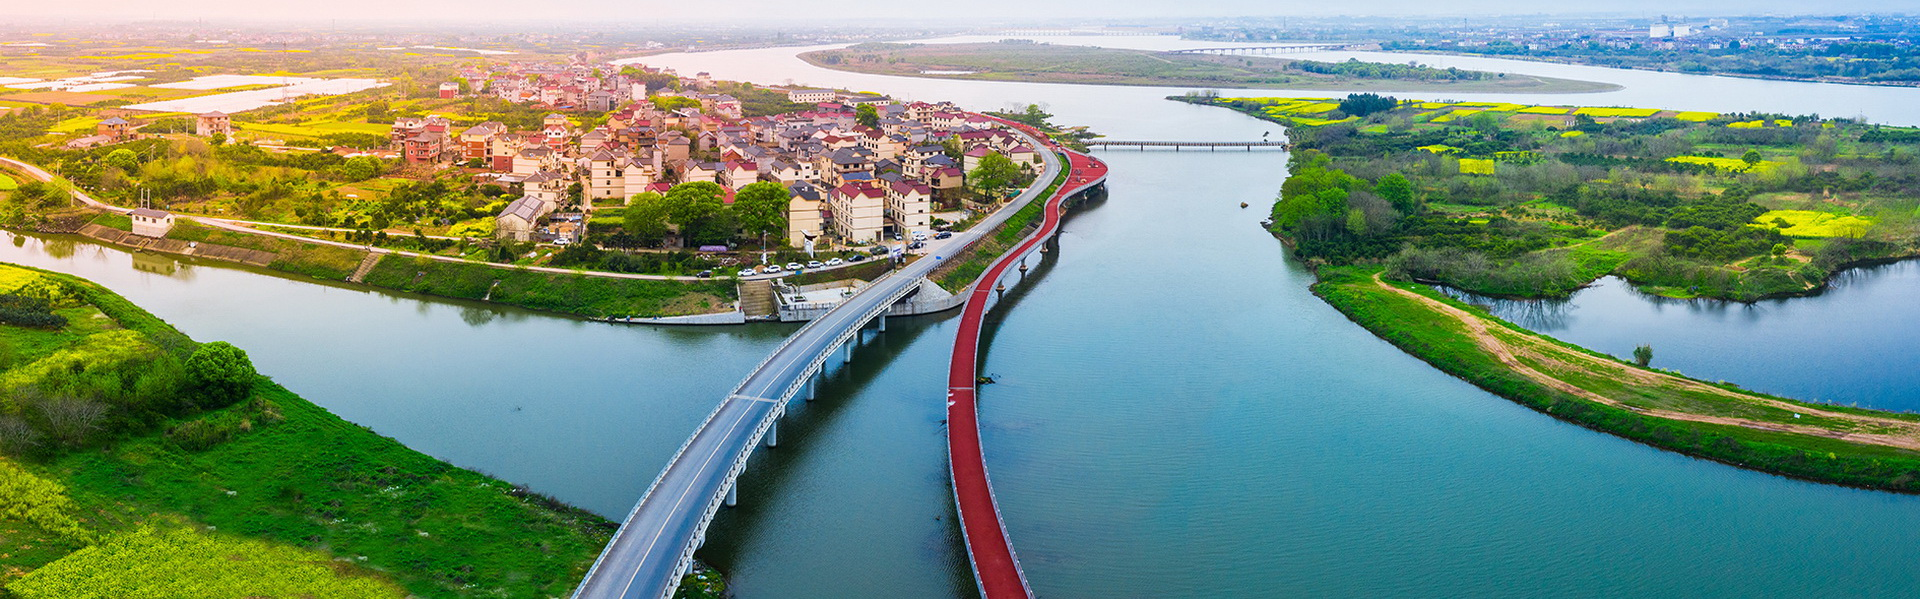 Road connecting six counties in Quzhou opens to traffic